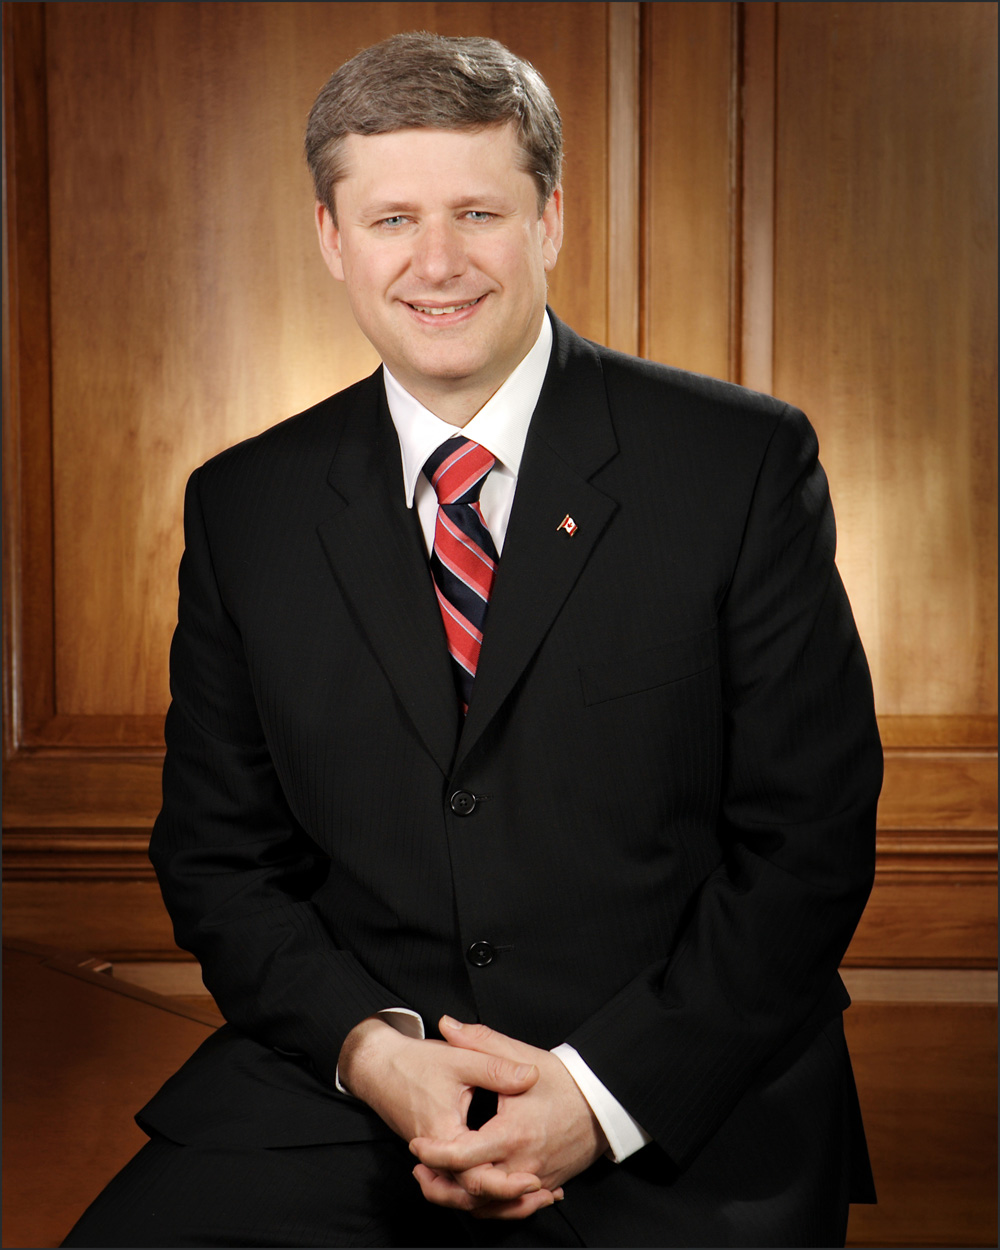 Photograph of Stephen Harper - Canada's 22nd Prime Minister